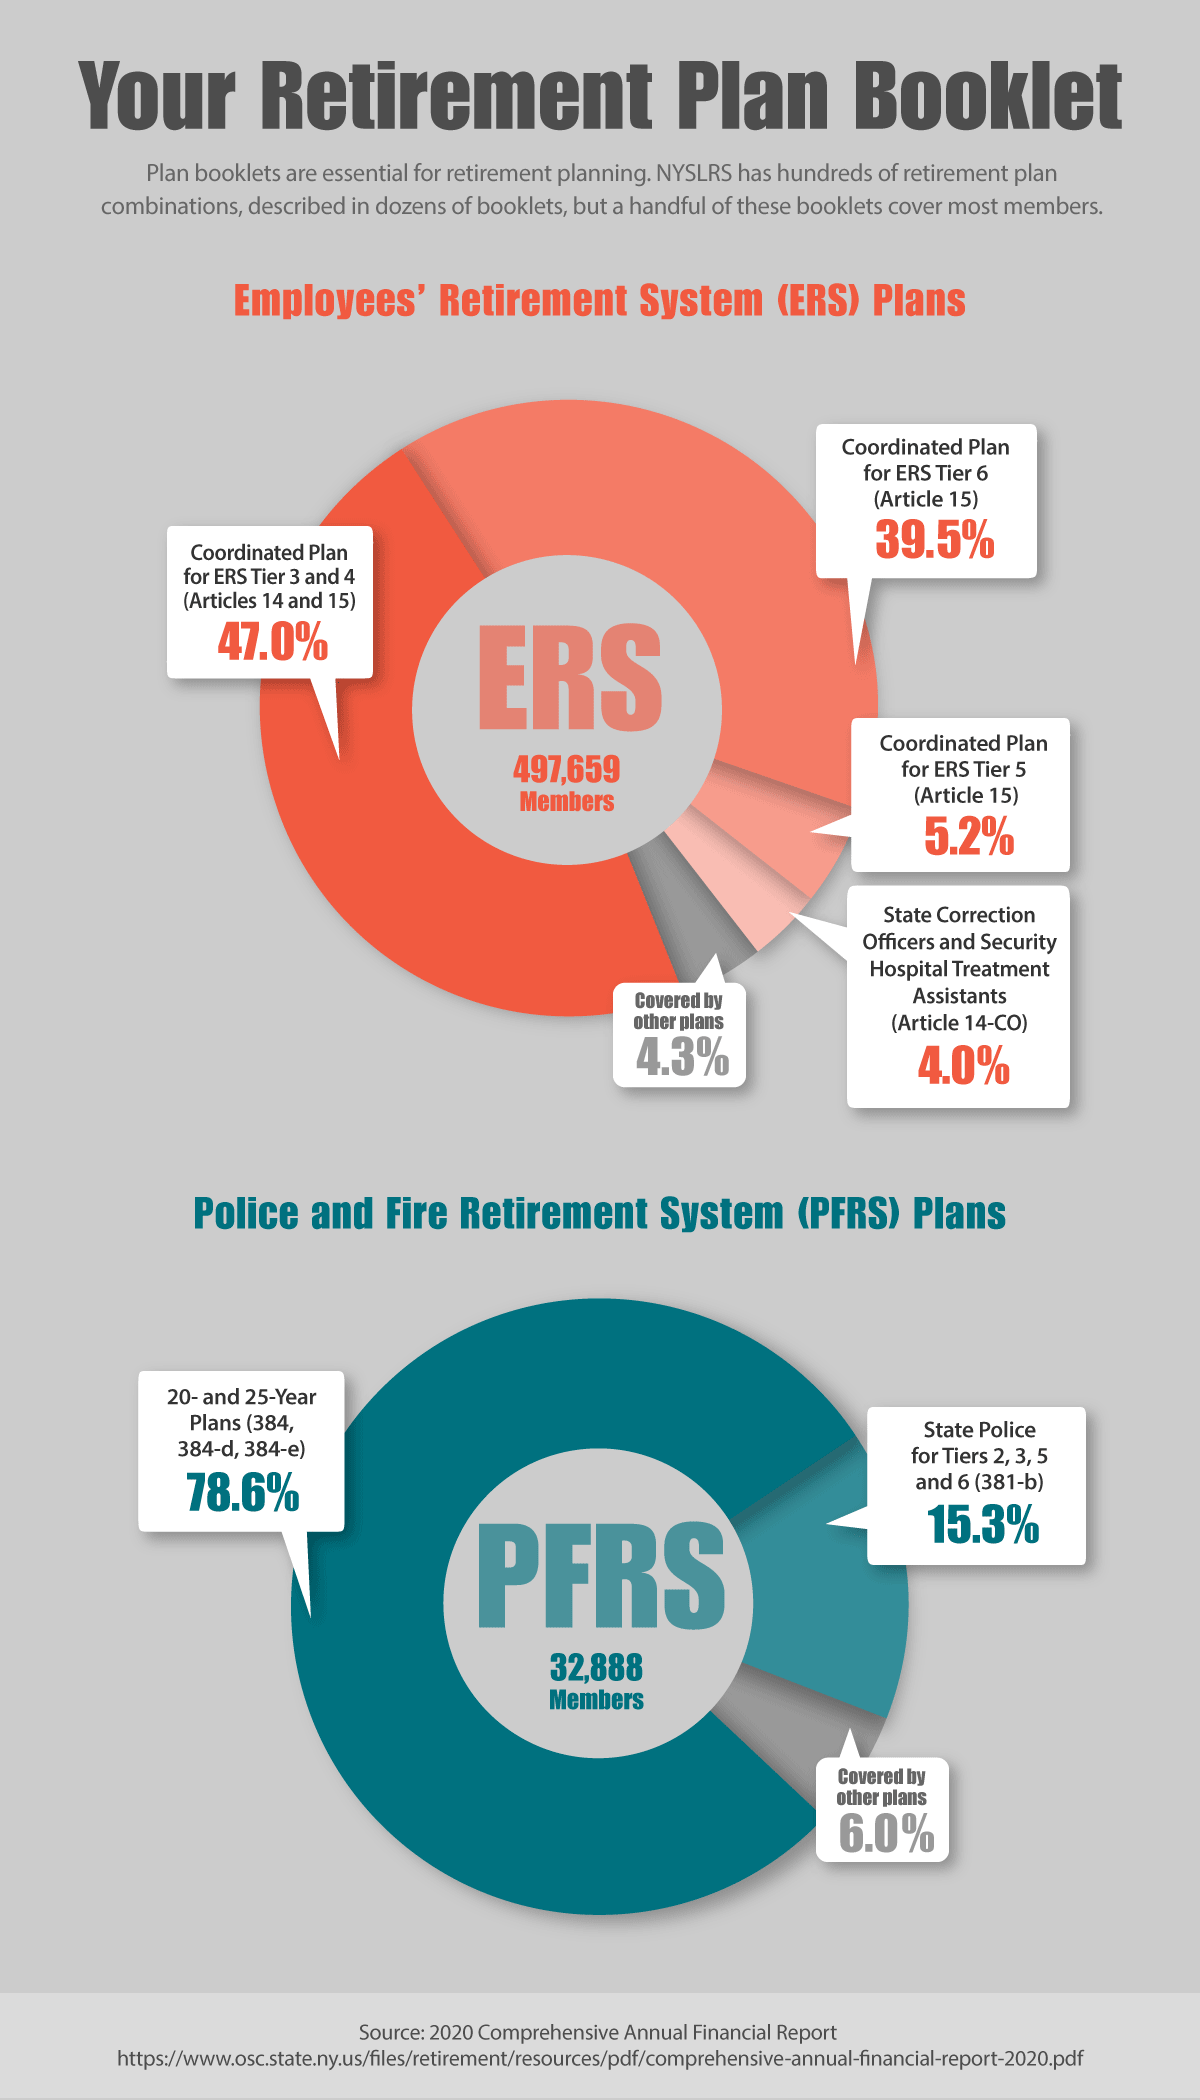 Retirement plan booklet infographic